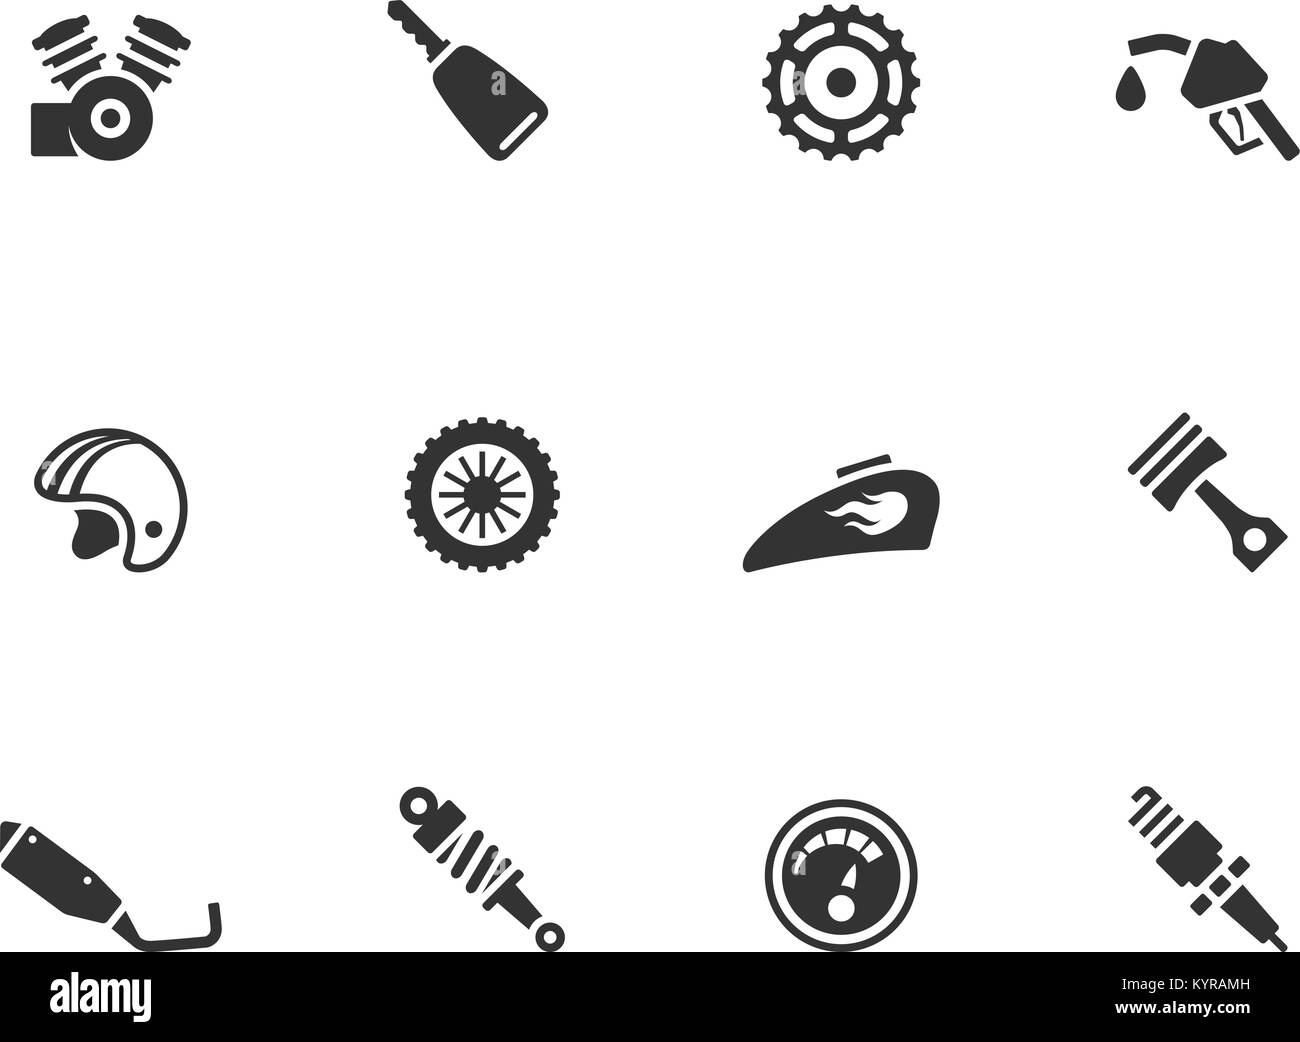 Motorcycle Parts Icons In Single Color Vector Illustration Stock